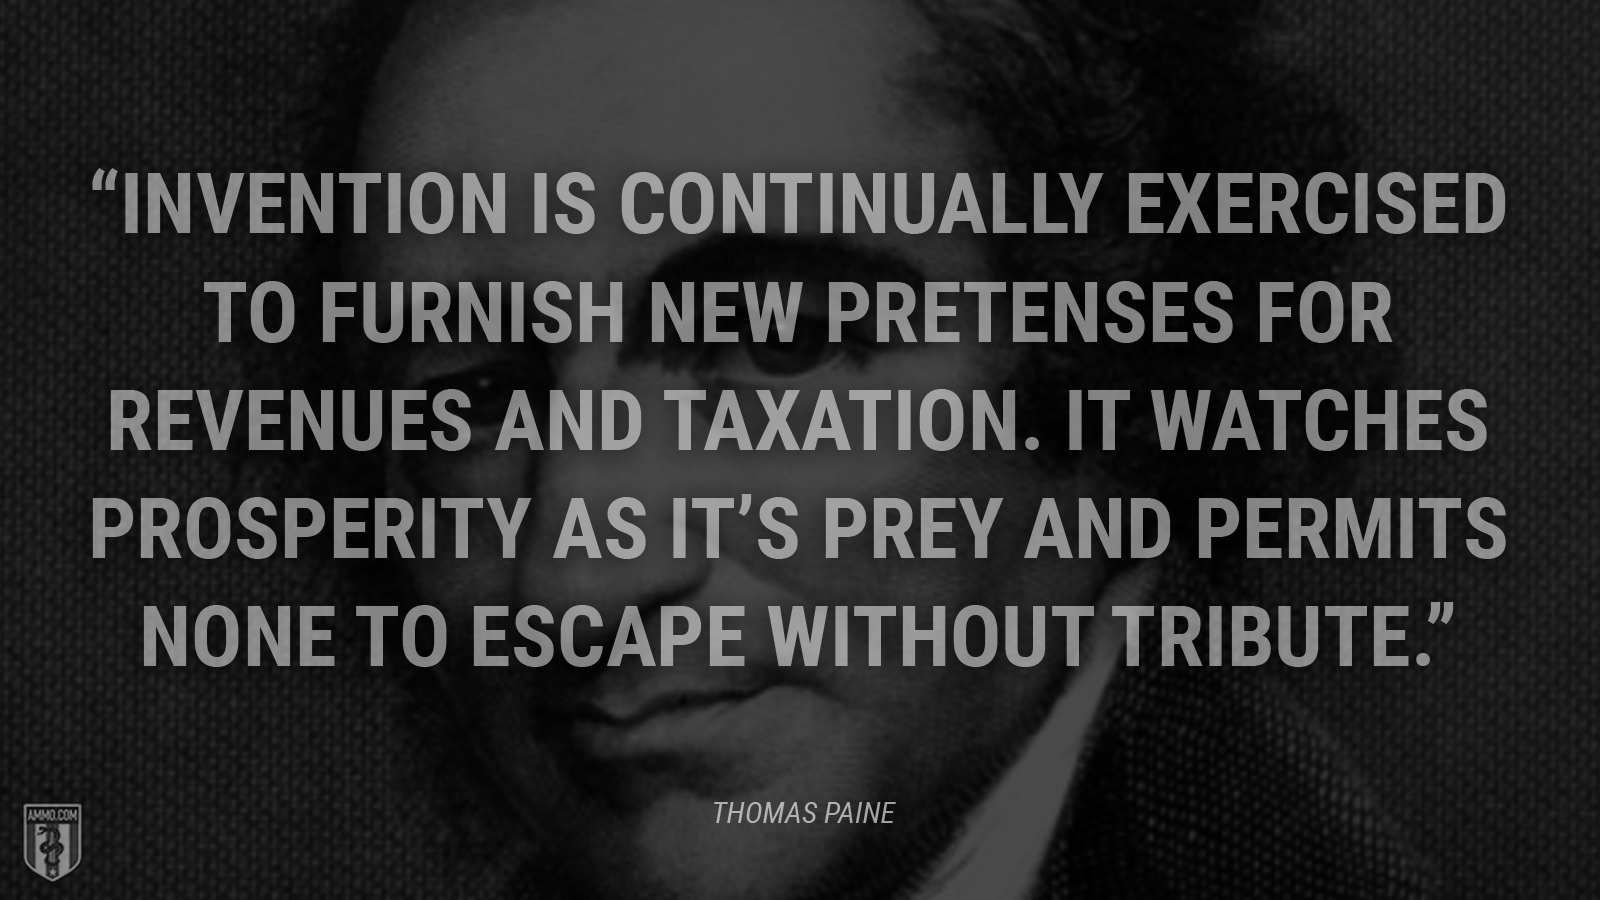 """Invention is continually exercised to furnish new pretenses for revenues and taxation. It watches prosperity as it's prey and permits none to escape without tribute."" - Thomas Paine"